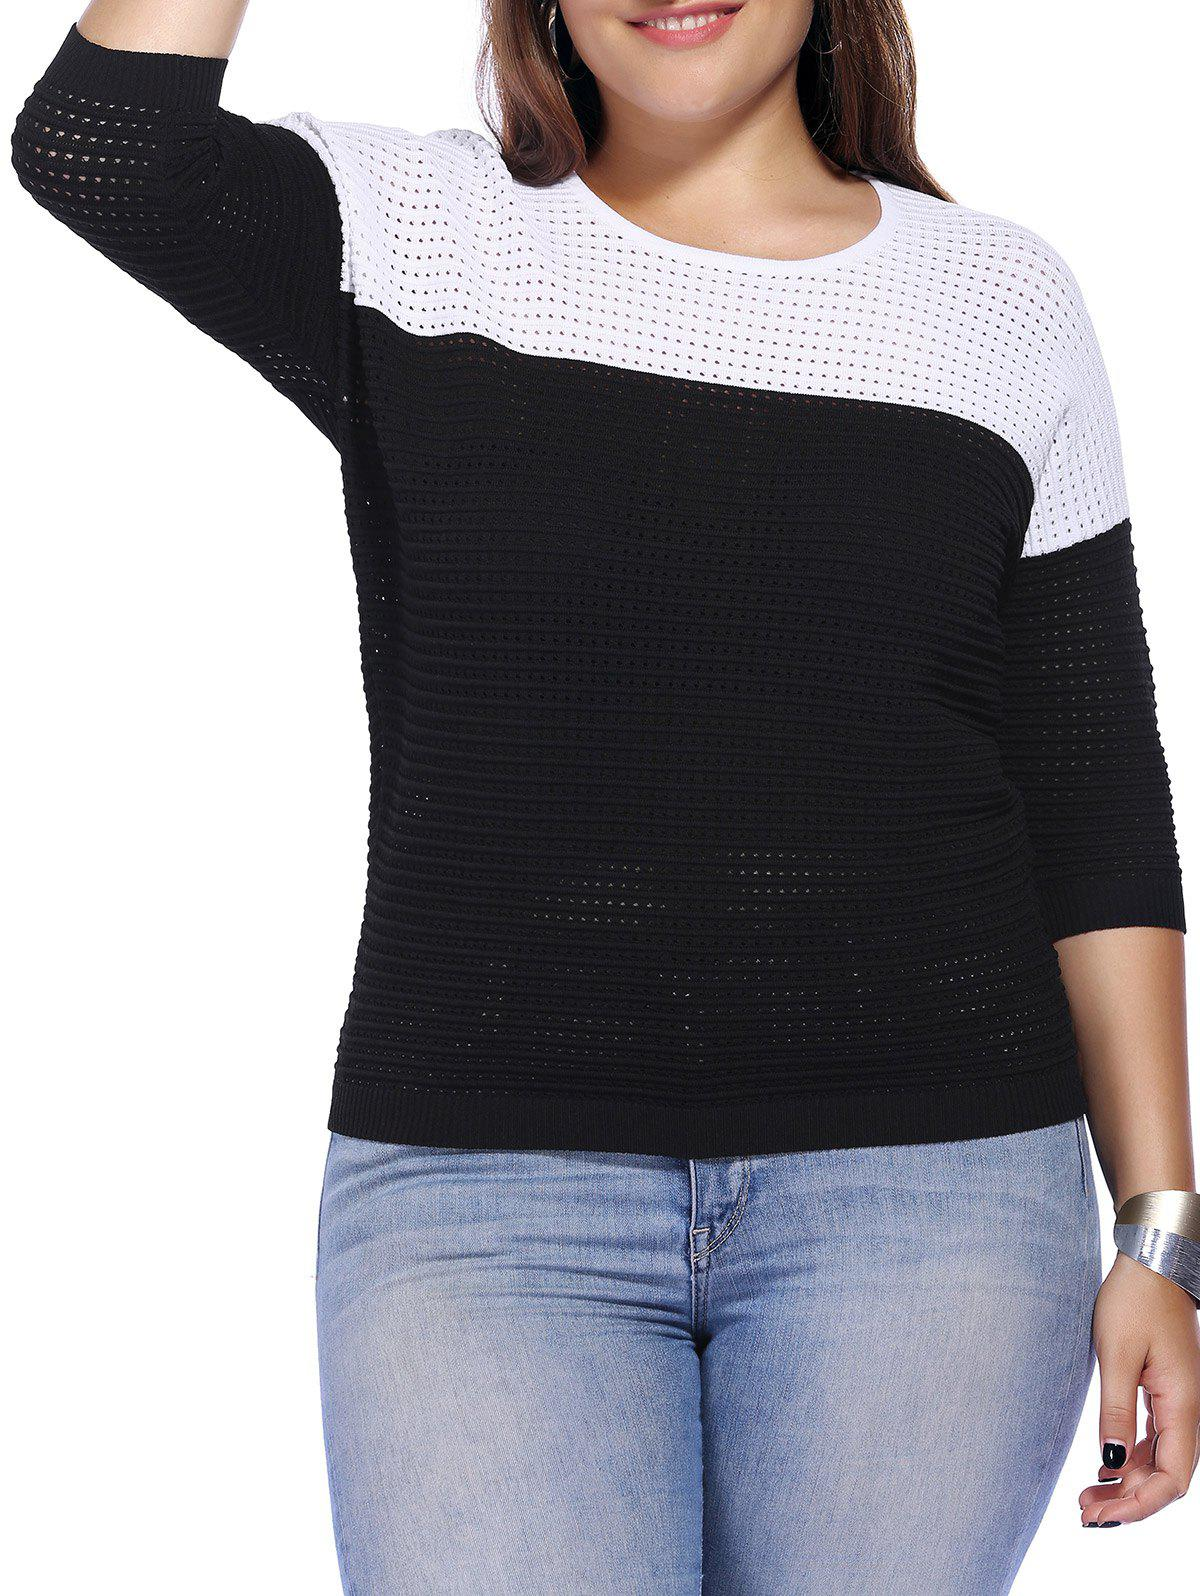 Chic Plus Size Hollow Out Hit Color Women's Knitwear - BLACK ONE SIZE(FIT SIZE L TO 3XL)